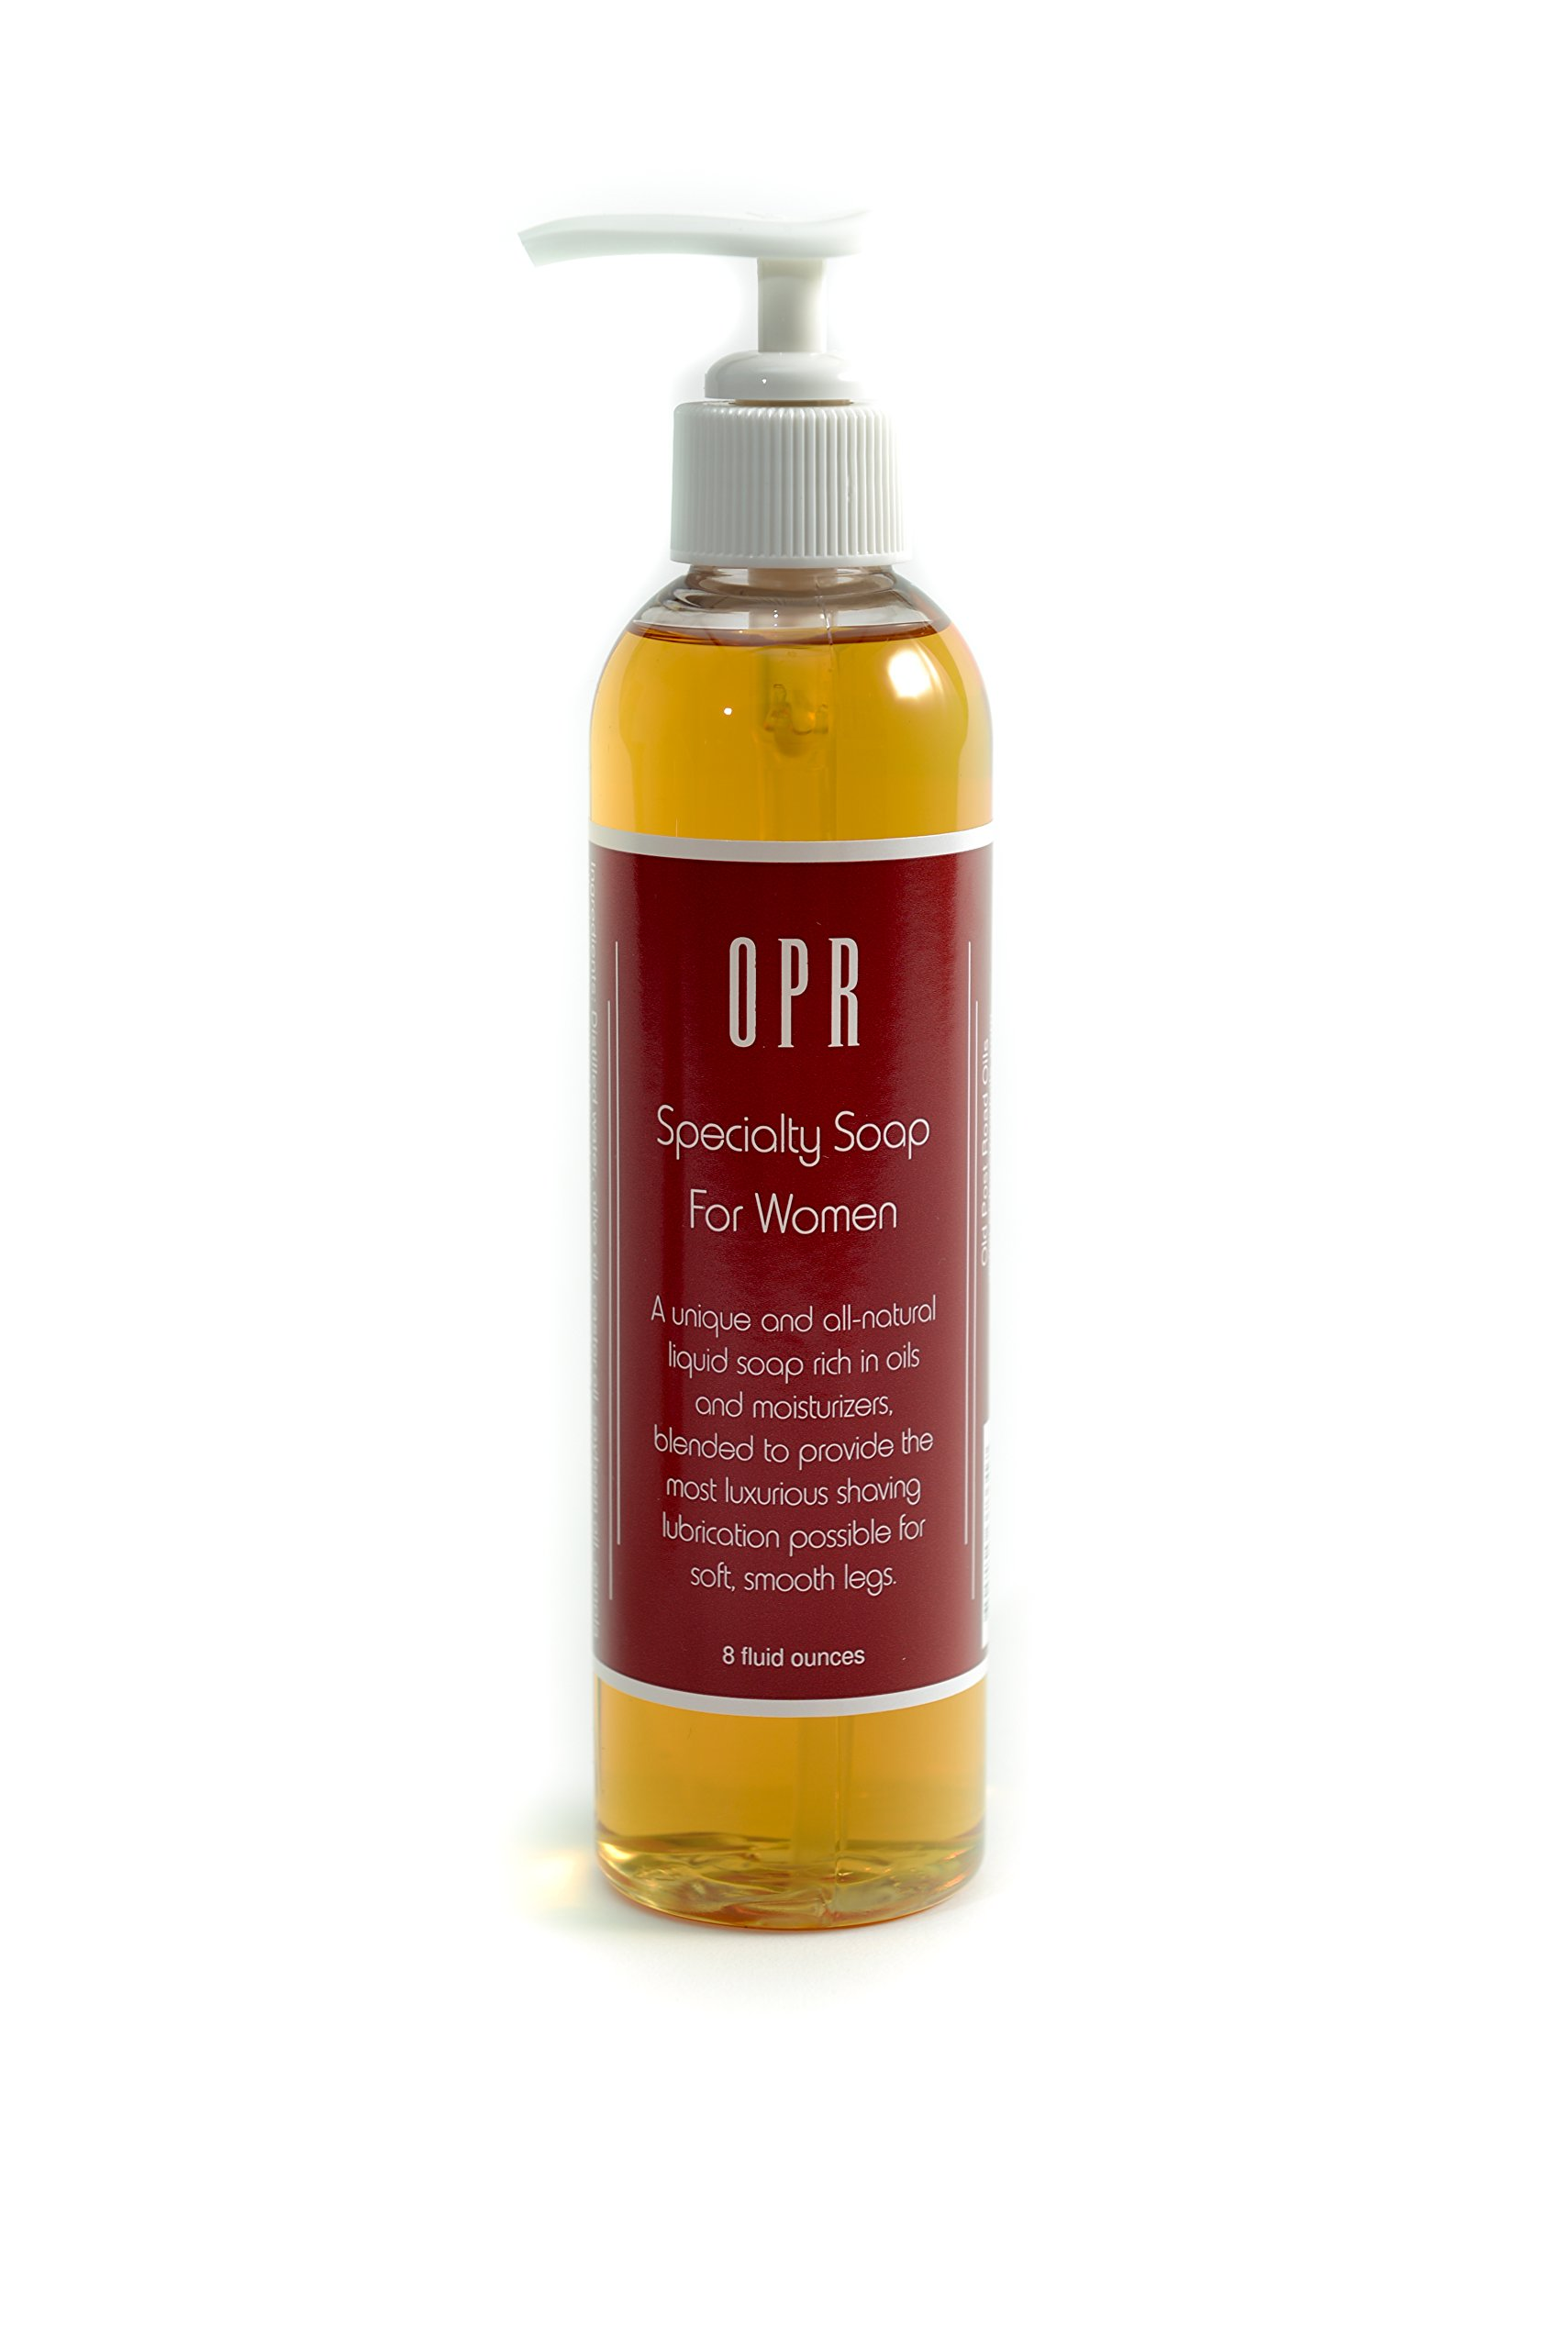 OPR Women's Speciality Soap is a Gentle Yet Vigorous All Natural Soap That leaves Your Skin feeling Smooth. It Cleanses, Nourishes and Moisturizes the skin. It Removes Make Up Without Needing A Toner. This 8 fl. oz. Bottle is Ideal for Sensitive Skin. Use